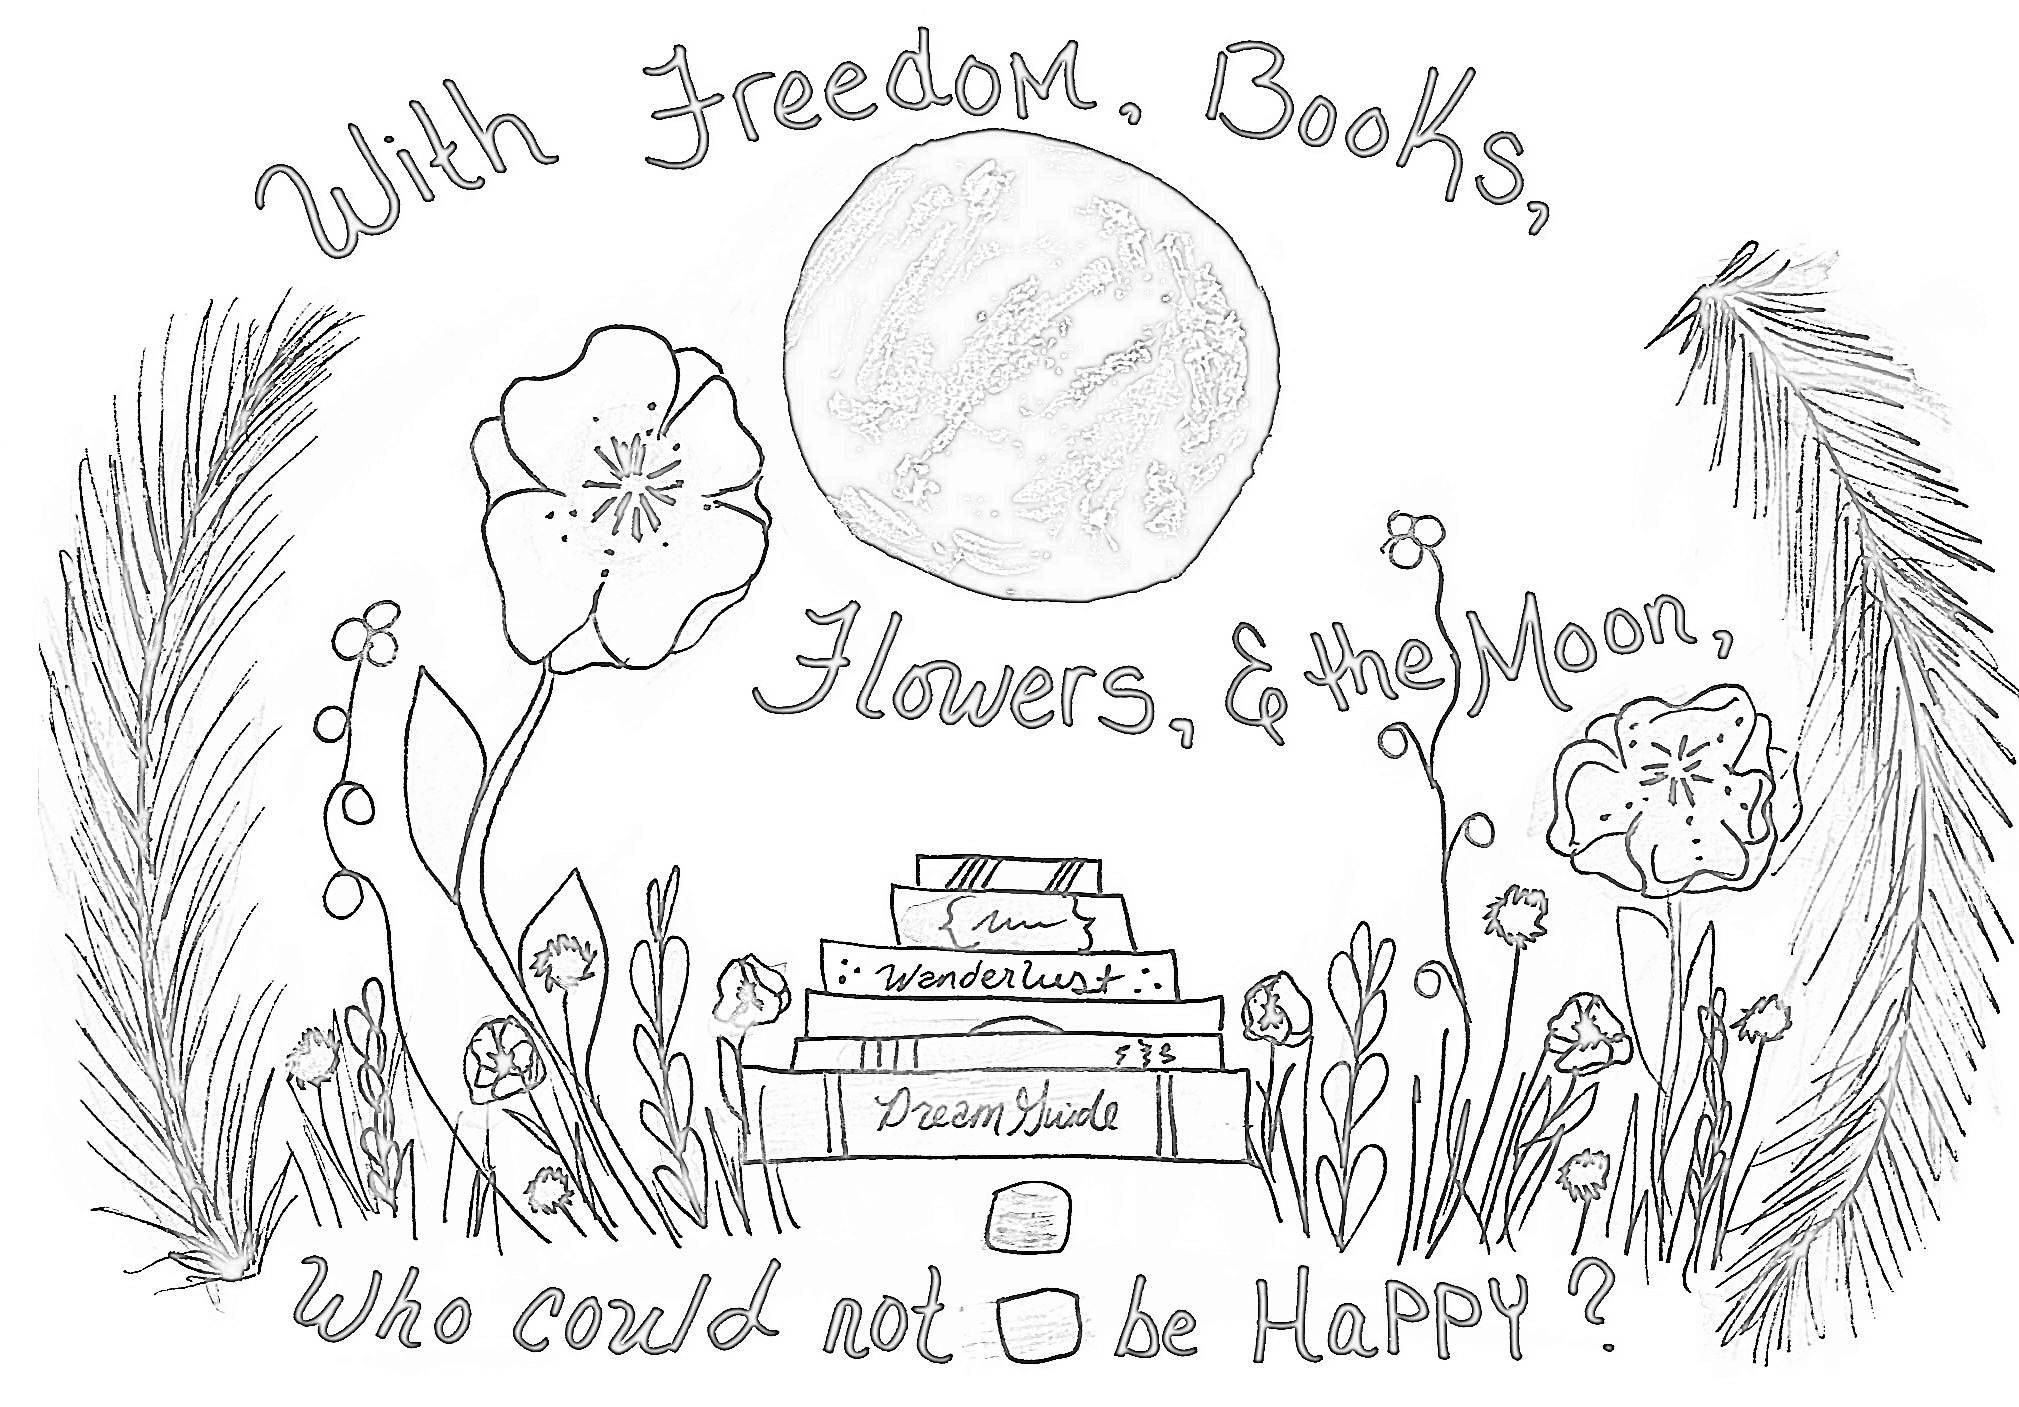 free books coloring.jpg